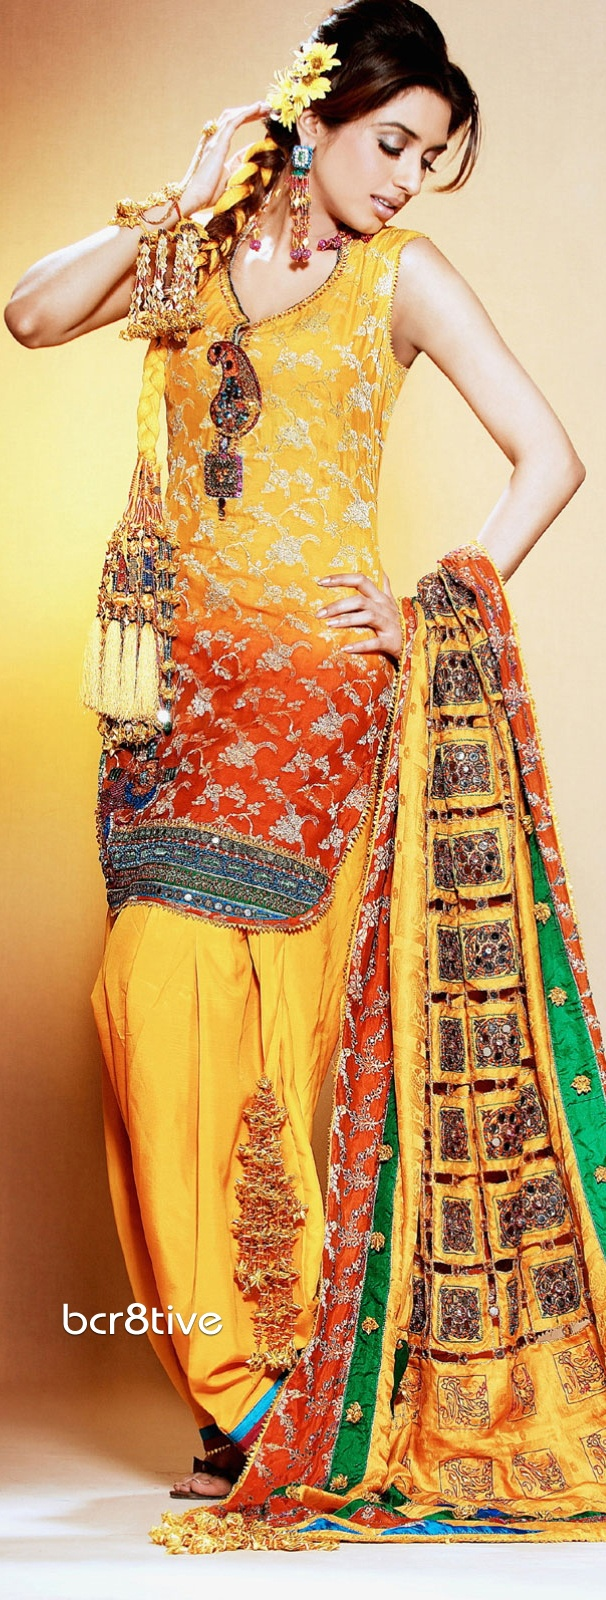 Zahra Ahmad - Subcontinental Mehndi Collection